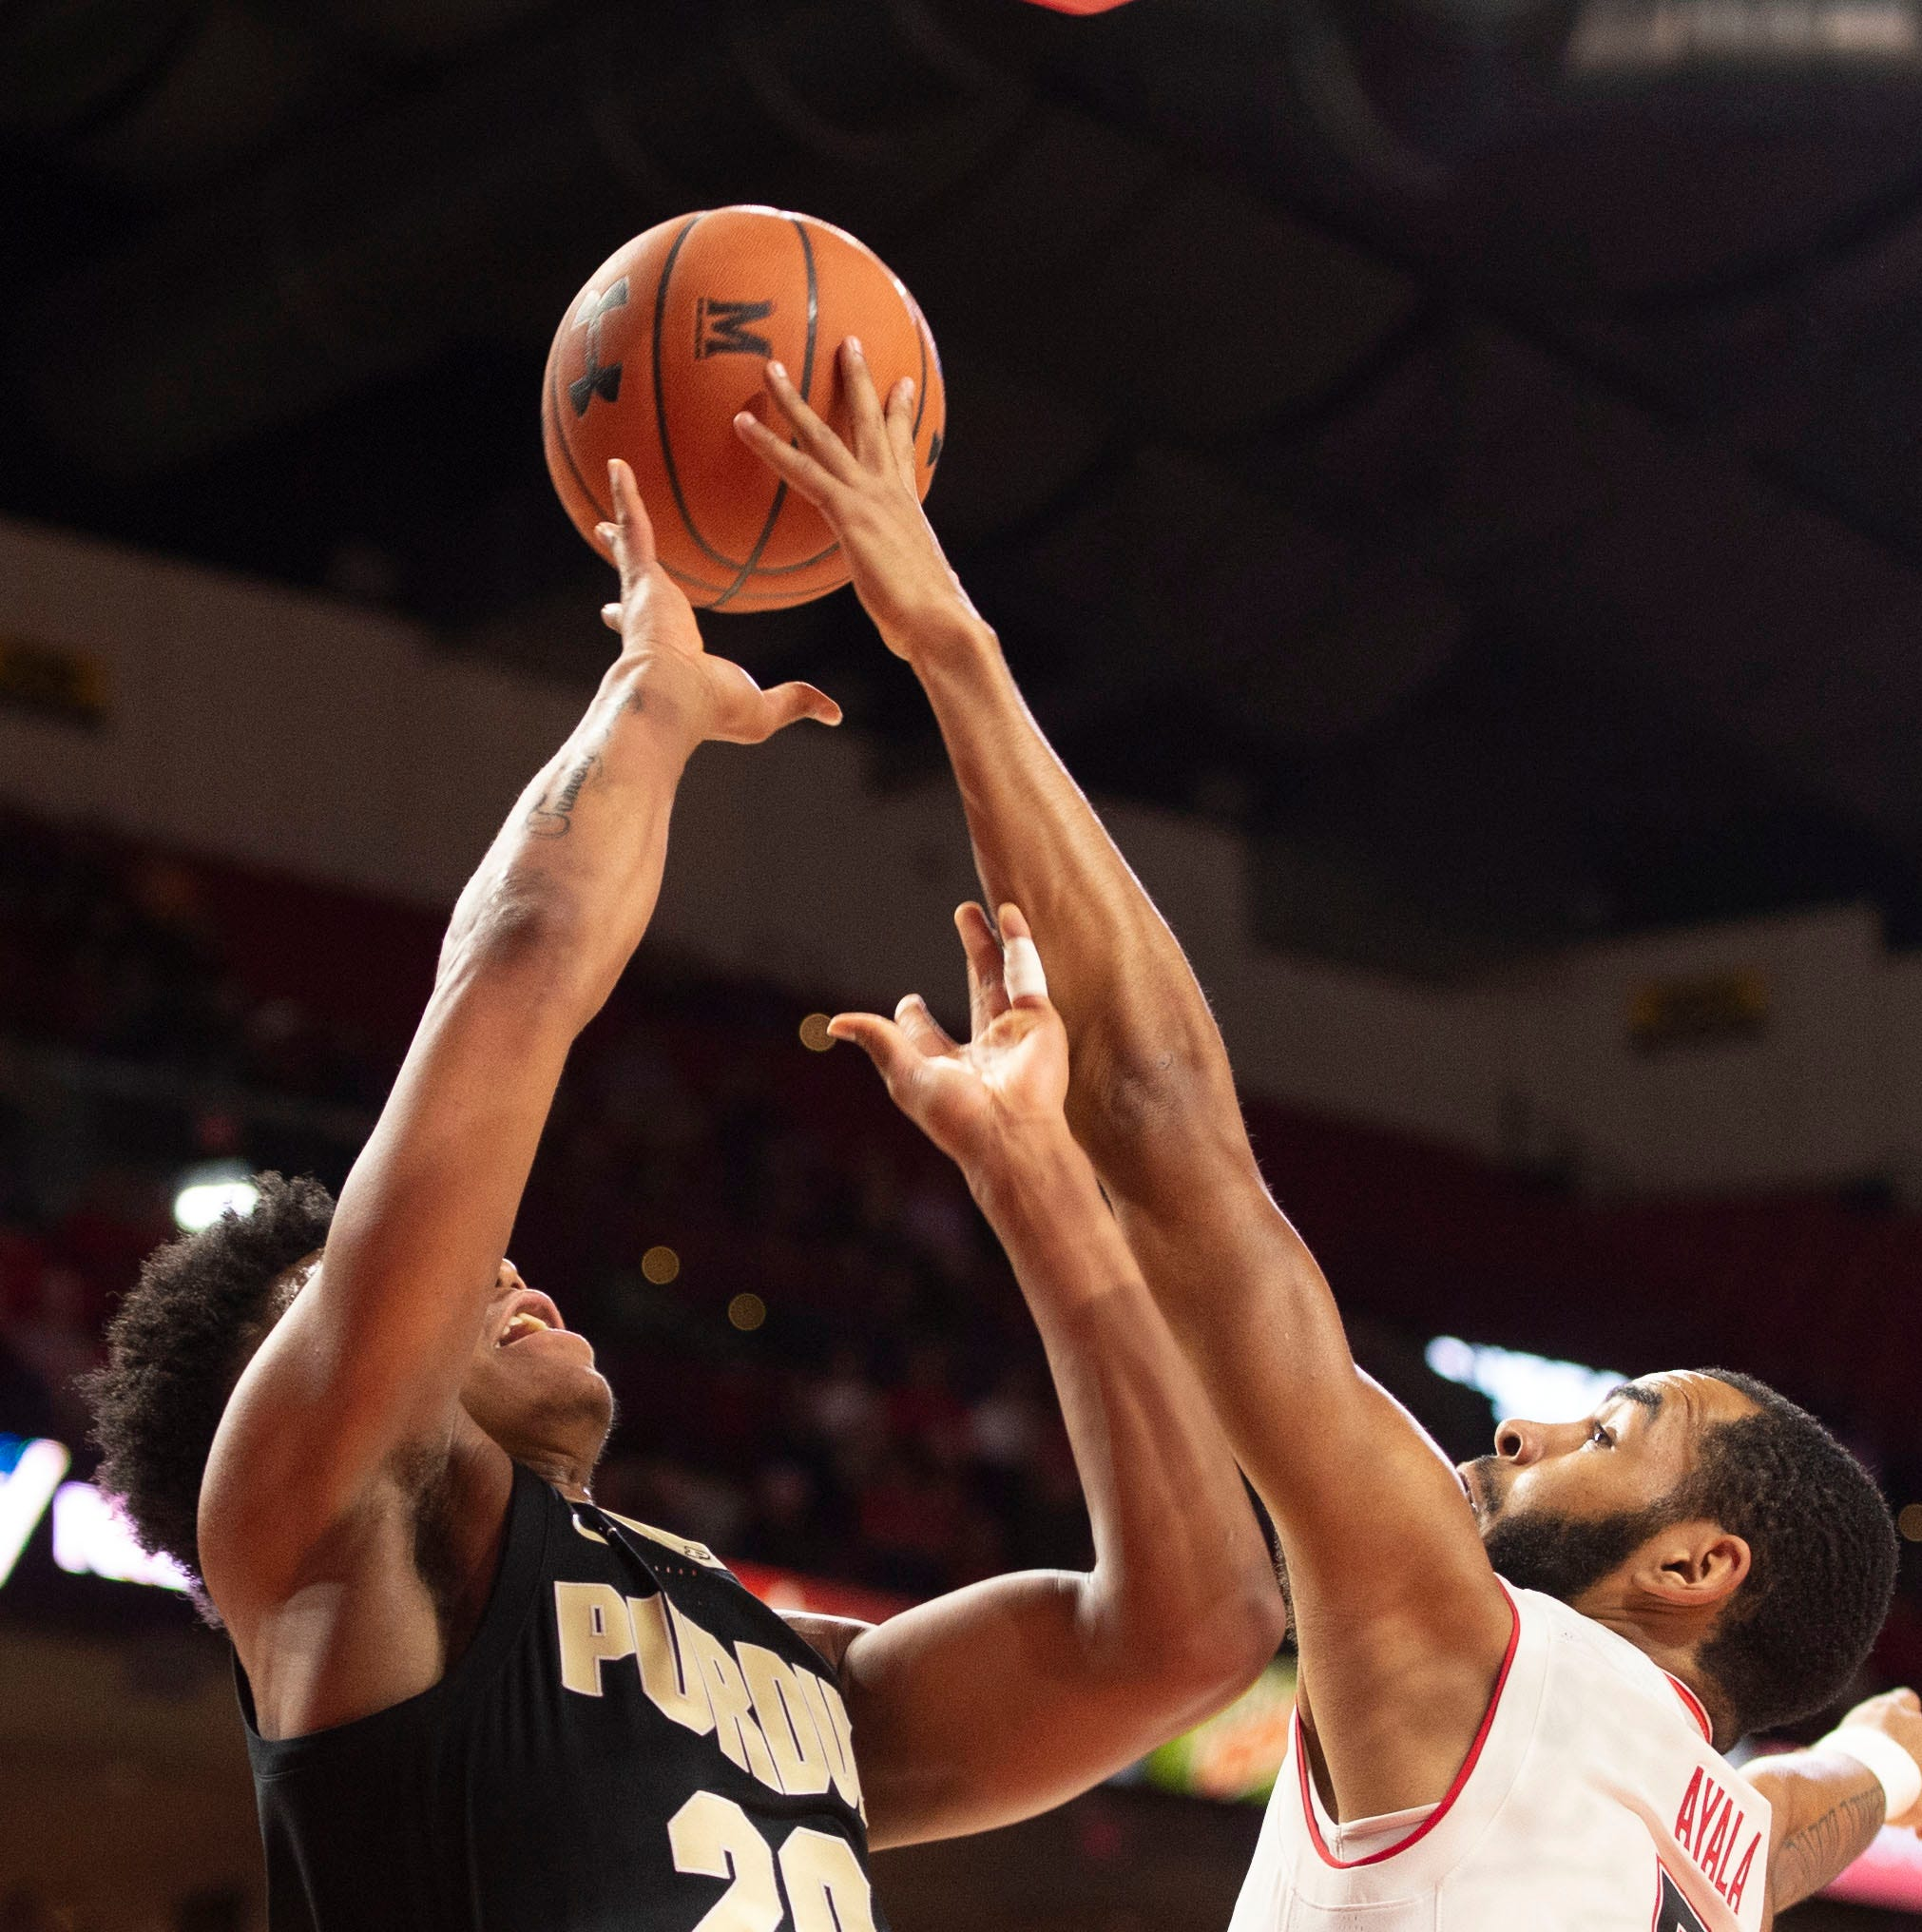 Insider: Winning streak over, Purdue basketball's next challenge is how to respond